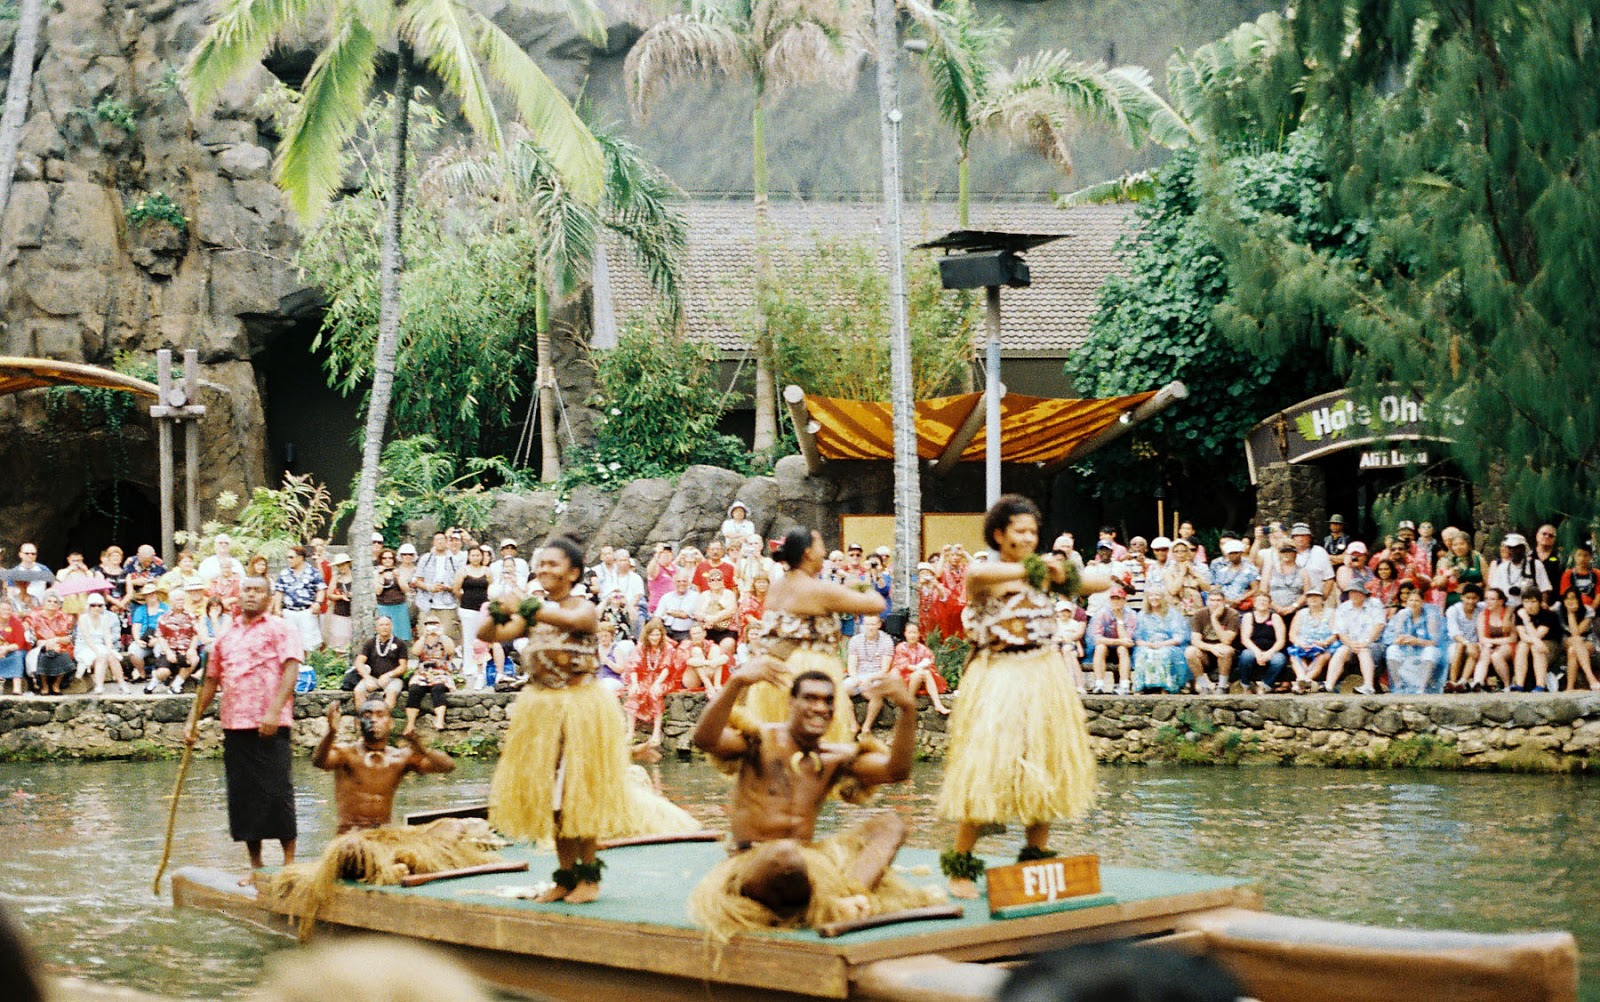 hawaii culture essay What are some differences between surf culture in hawaii and california what are the main cultural differences between australia and the usa what are the main cultural differences between south korea and the usa.